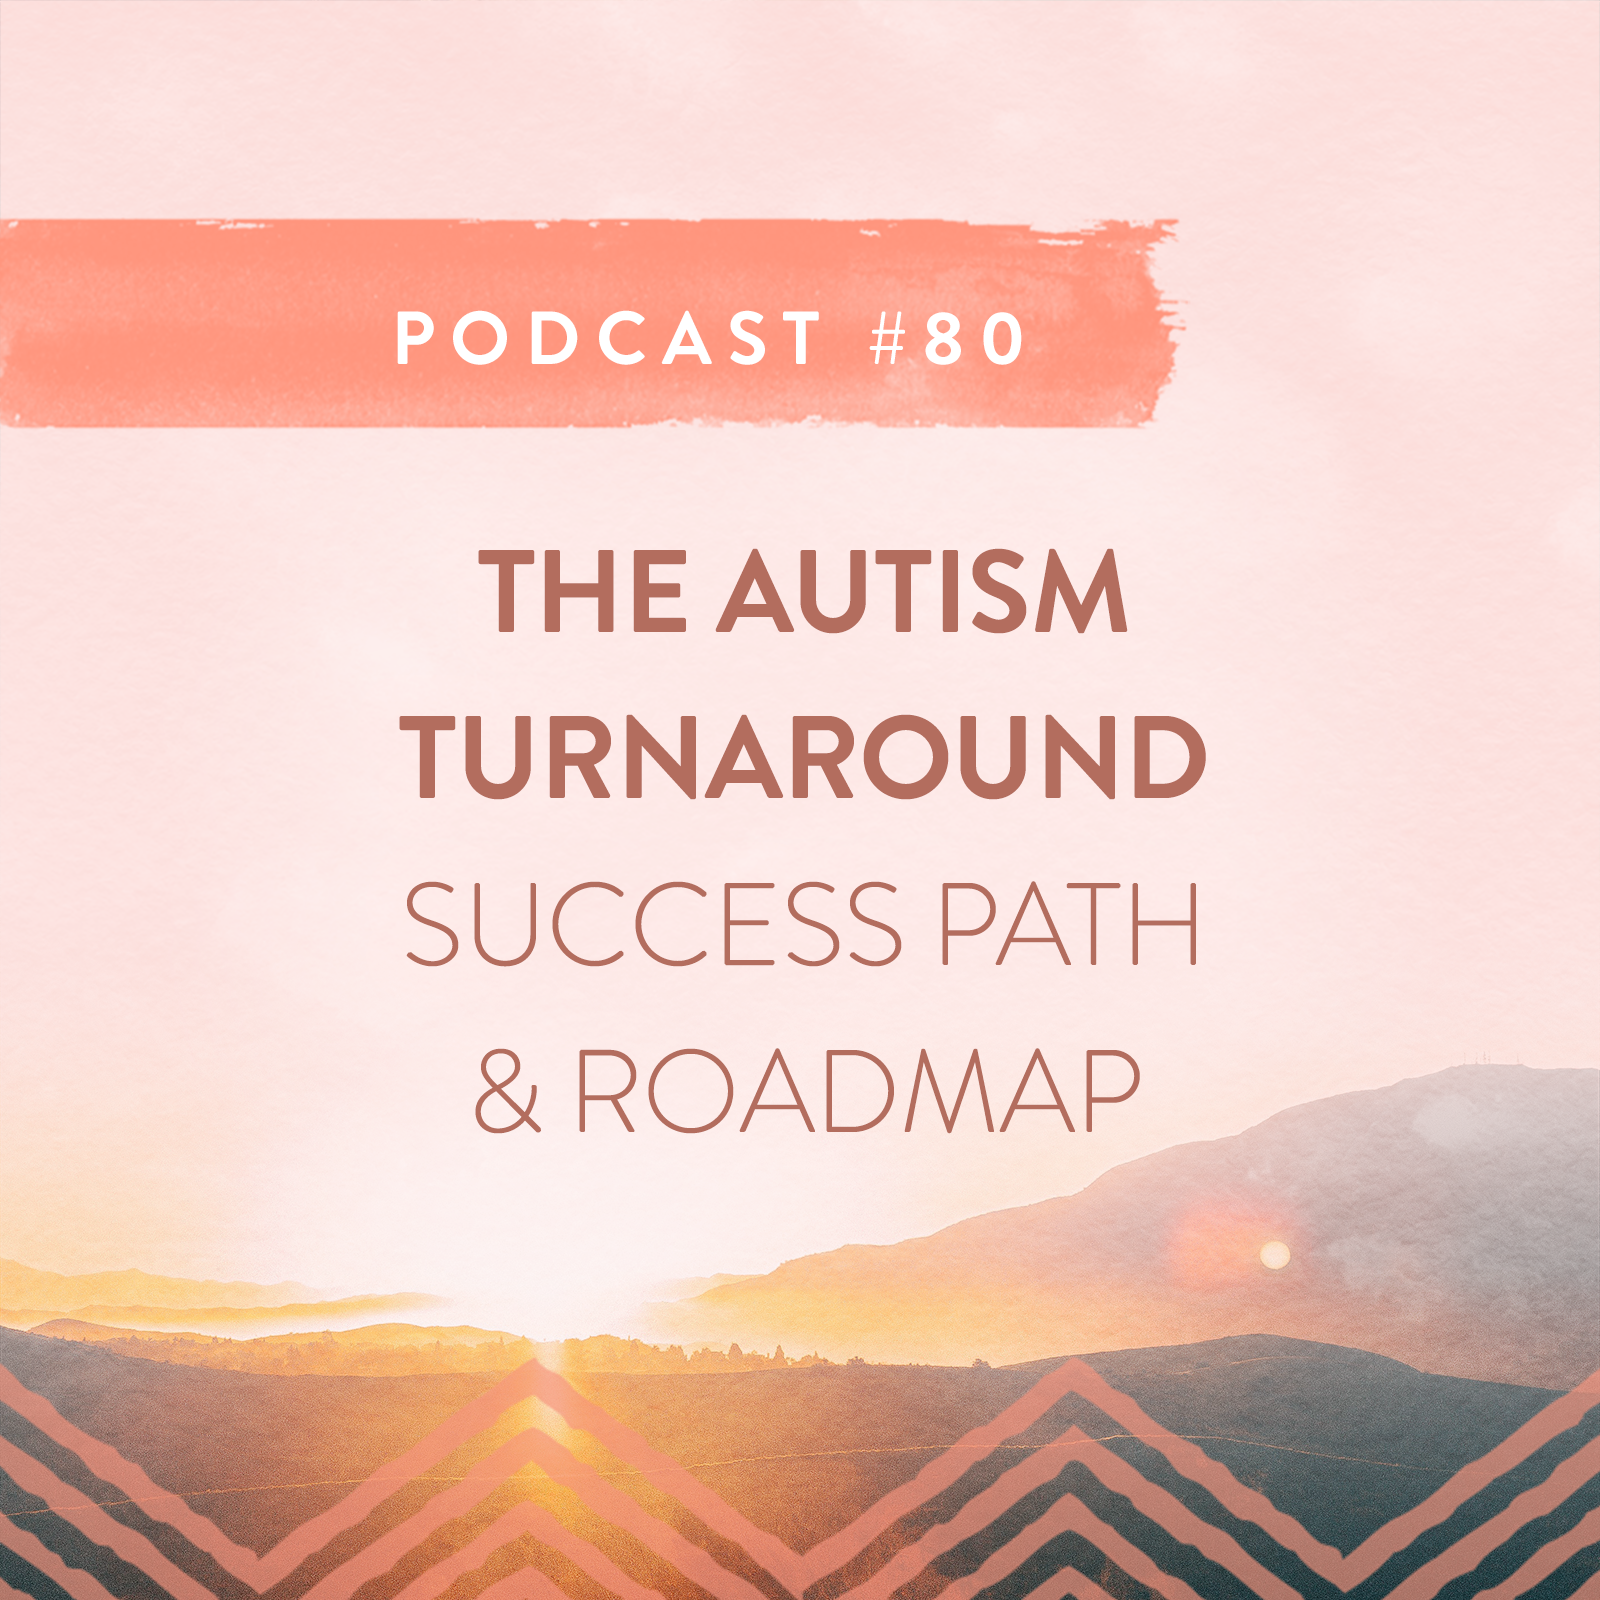 80 MY AUTISM TURNAROUND SUCCESS PATH & ROADMAP